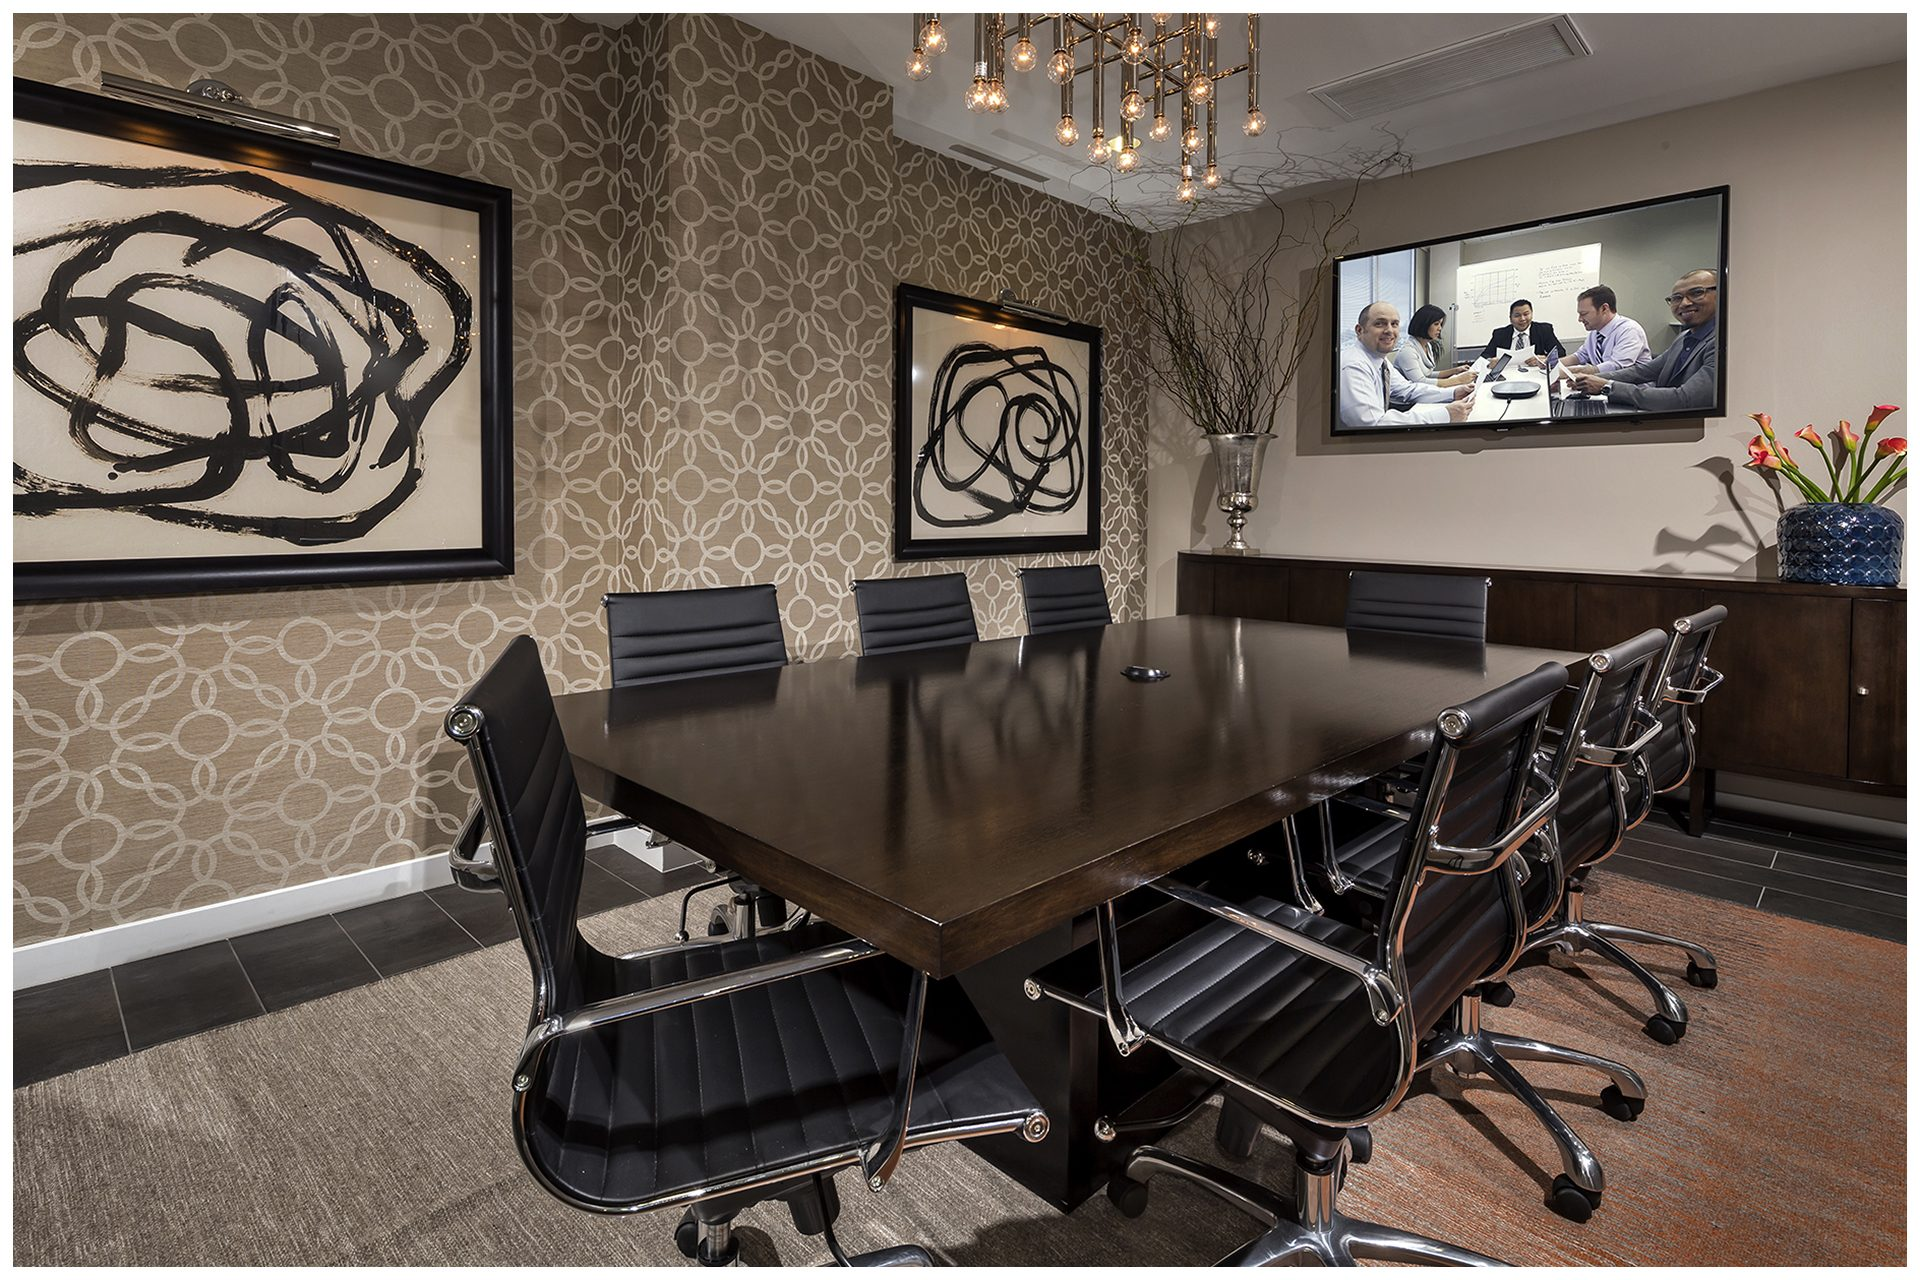 CONFERENCE ROOMConference Room Audio Video & WiFi; Audio Video provisions controlled via an in-room iPad and remotely from leasing office.